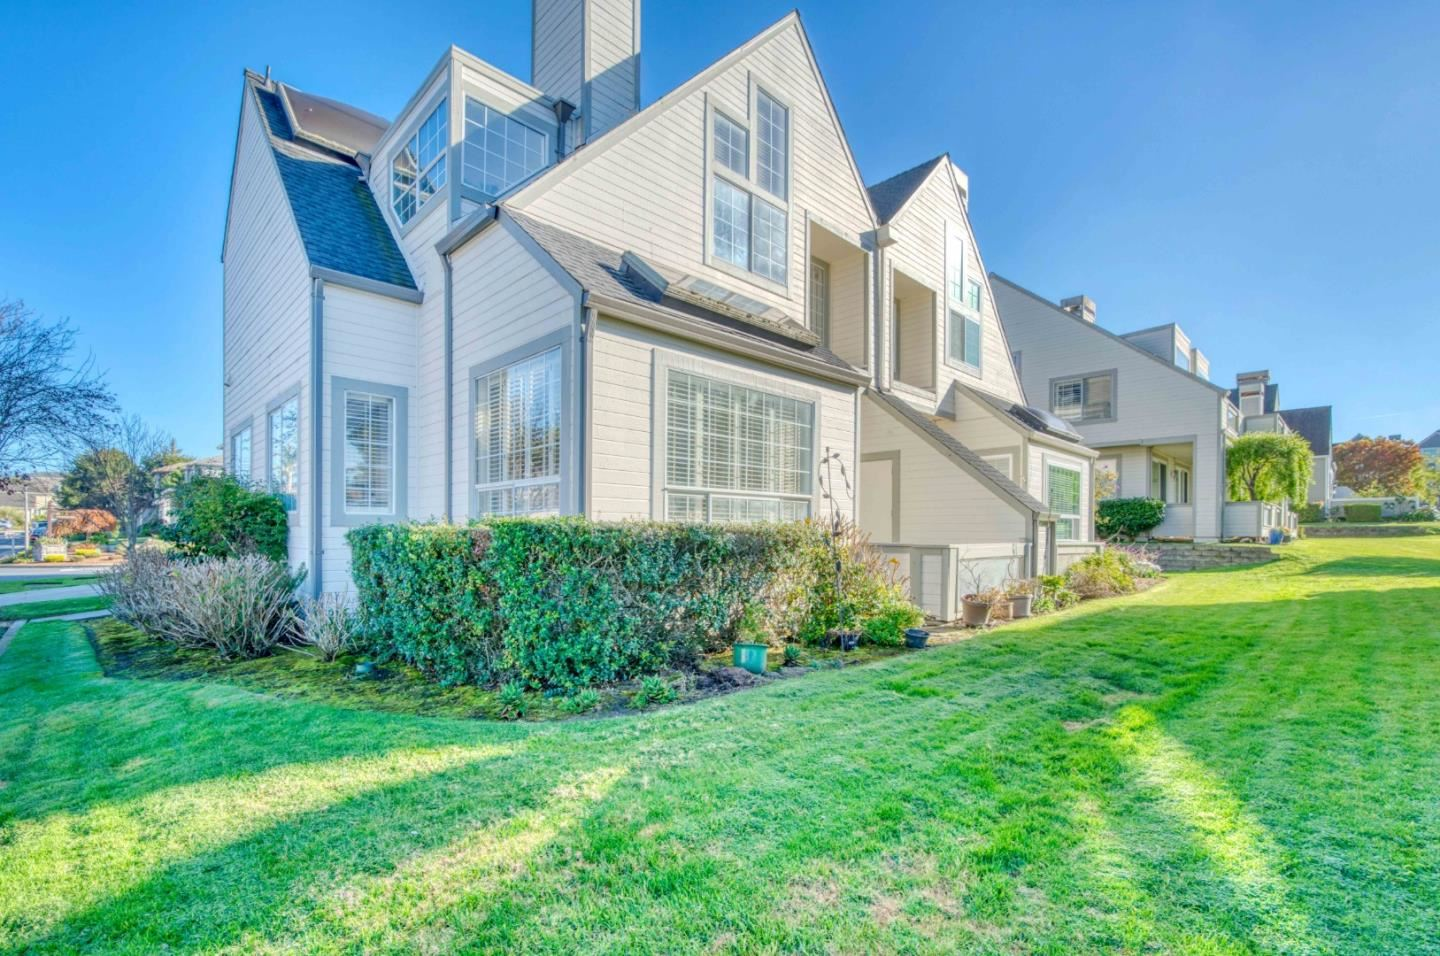 Photo for 120 Turnberry RD, HALF MOON BAY, CA 94019 (MLS # ML81821726)